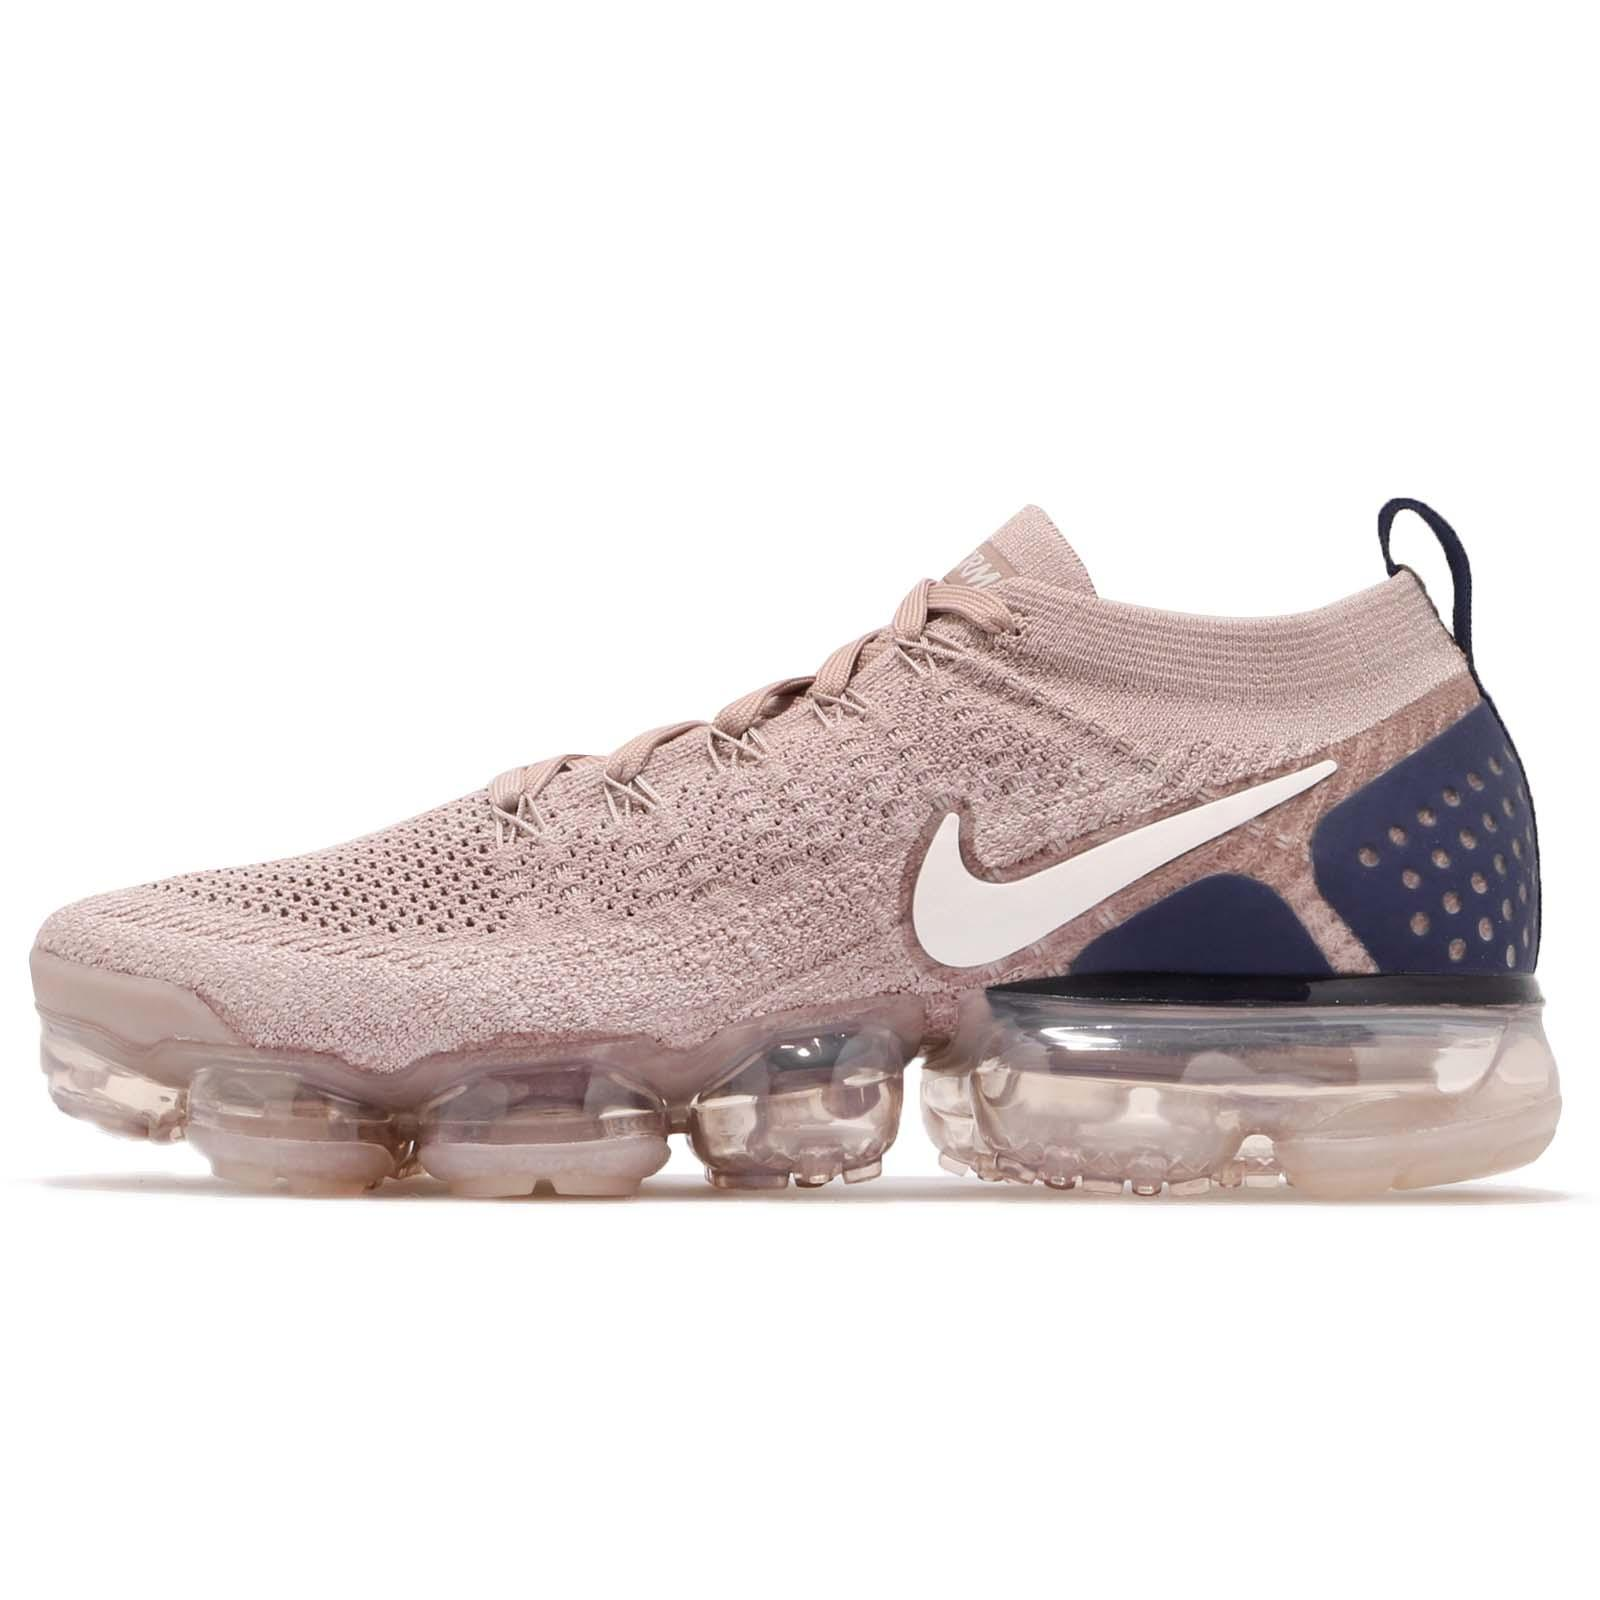 best service 85ea9 519dd Nike Air Vapormax Flyknit 2 2.0 Max Difused Taupe Mens Running Shoes 942842 -201